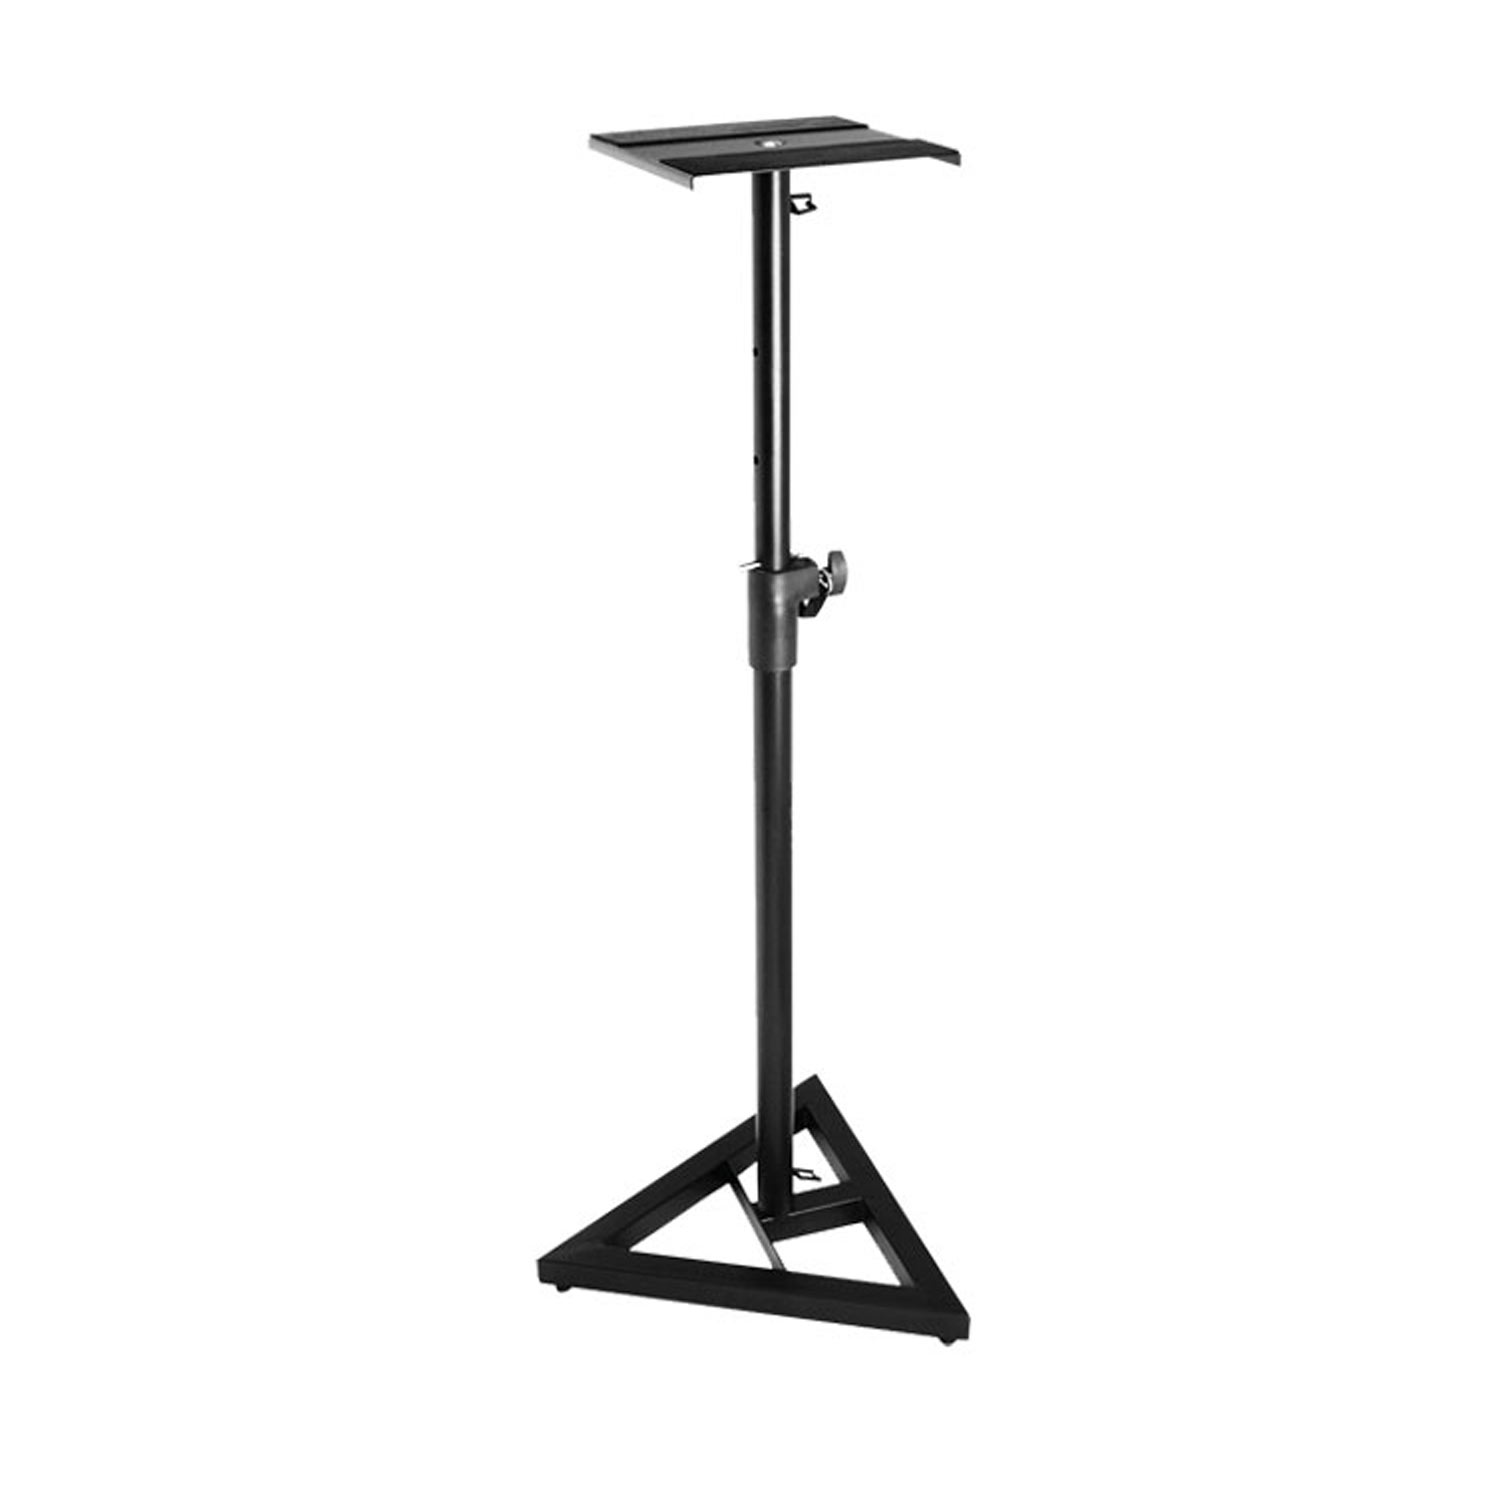 Studio Monitor Stand TEK audio SS500